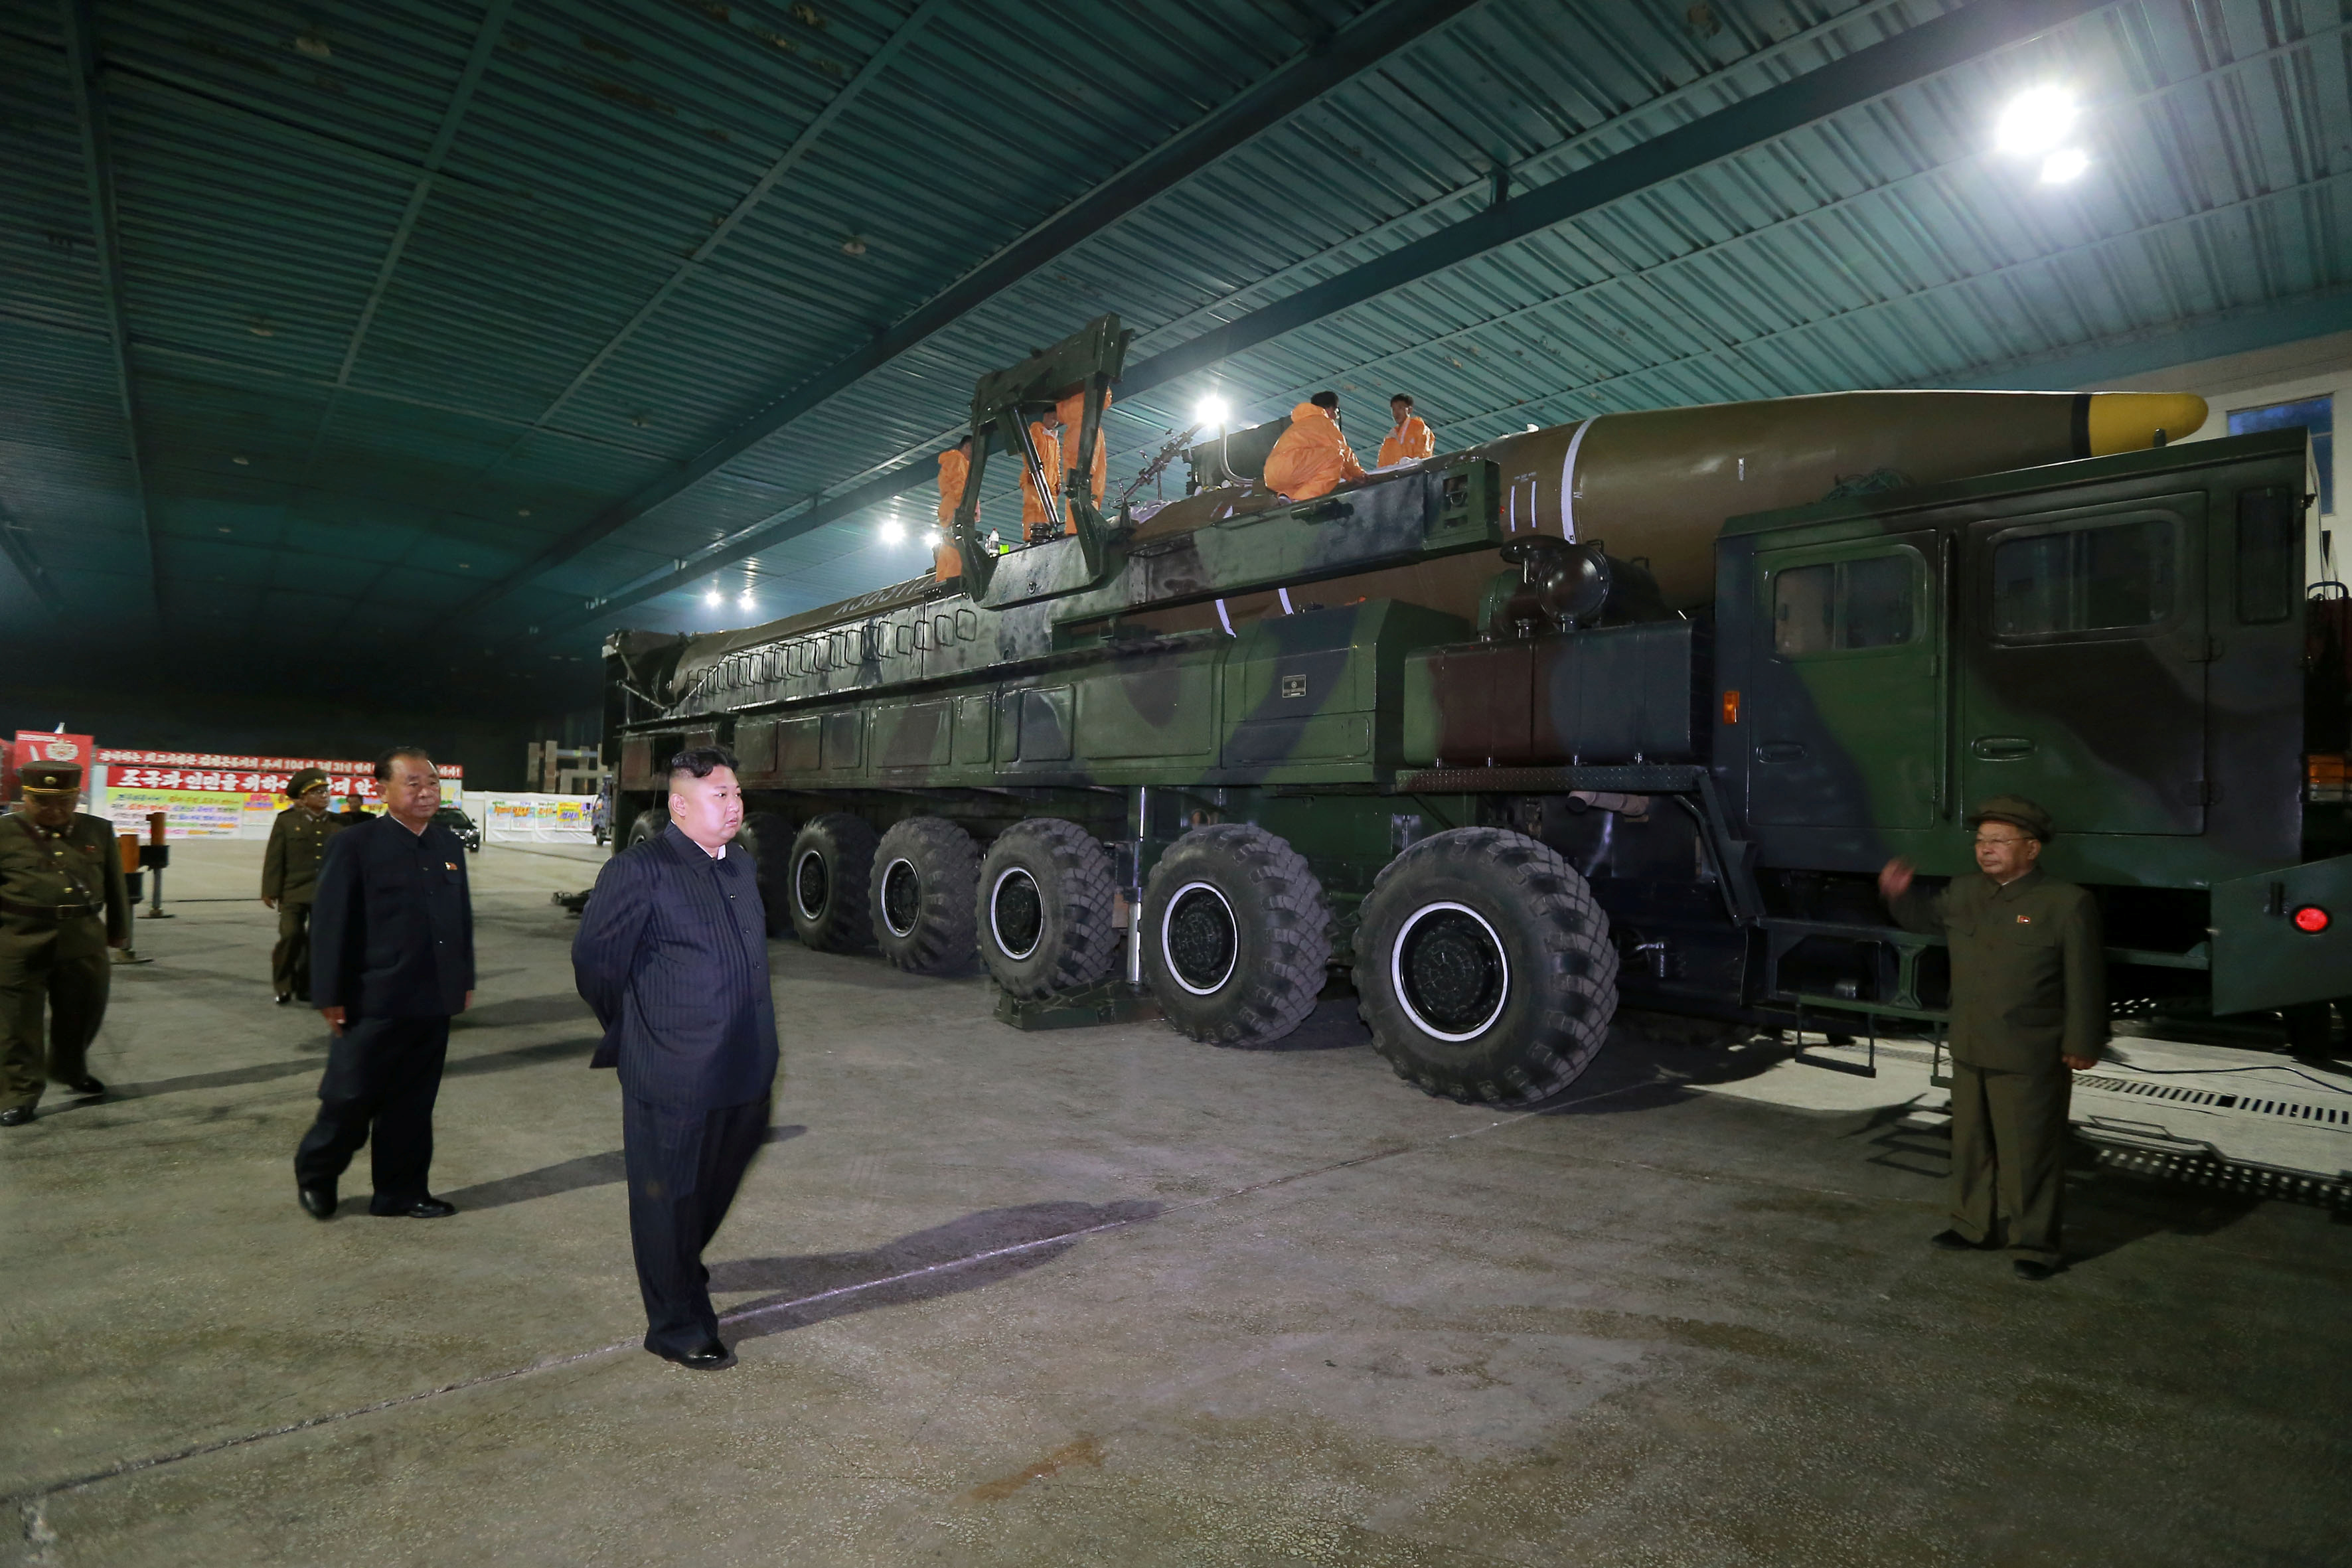 North Korean leader Kim Jong Un inspects the intercontinental ballistic missile Hwasong-14 in this undated photo released by North Korea's Korean Central News Agency (KCNA) in Pyongyang July 5, 2017. KCNA/via REUTERS ATTENTION EDITORS - THIS IMAGE WAS PROVIDED BY A THIRD PARTY. REUTERS IS UNABLE TO INDEPENDENTLY VERIFY THIS IMAGE. NO THIRD PARTY SALES. SOUTH KOREA OUT.